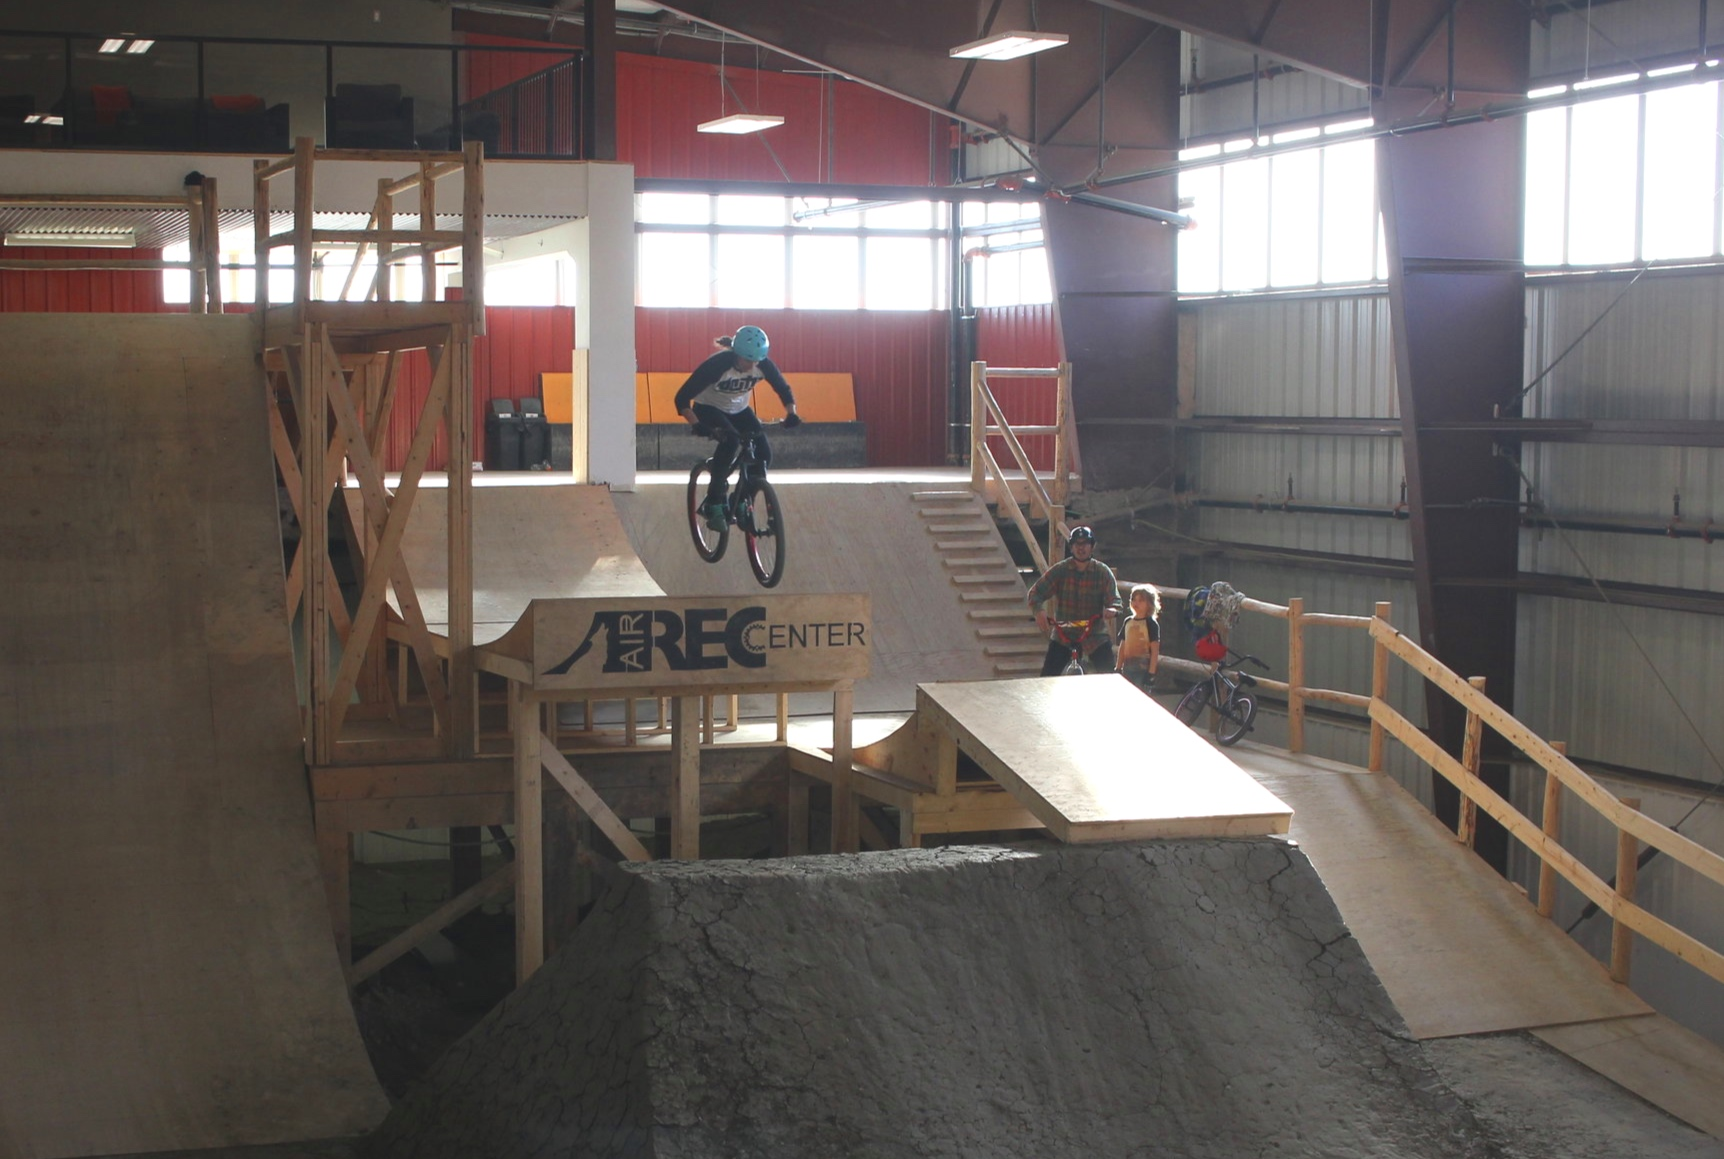 Heather Barody-Adams dropping in at Air Rec in Maple Ridge, BC. Photo credit: Ben Adams